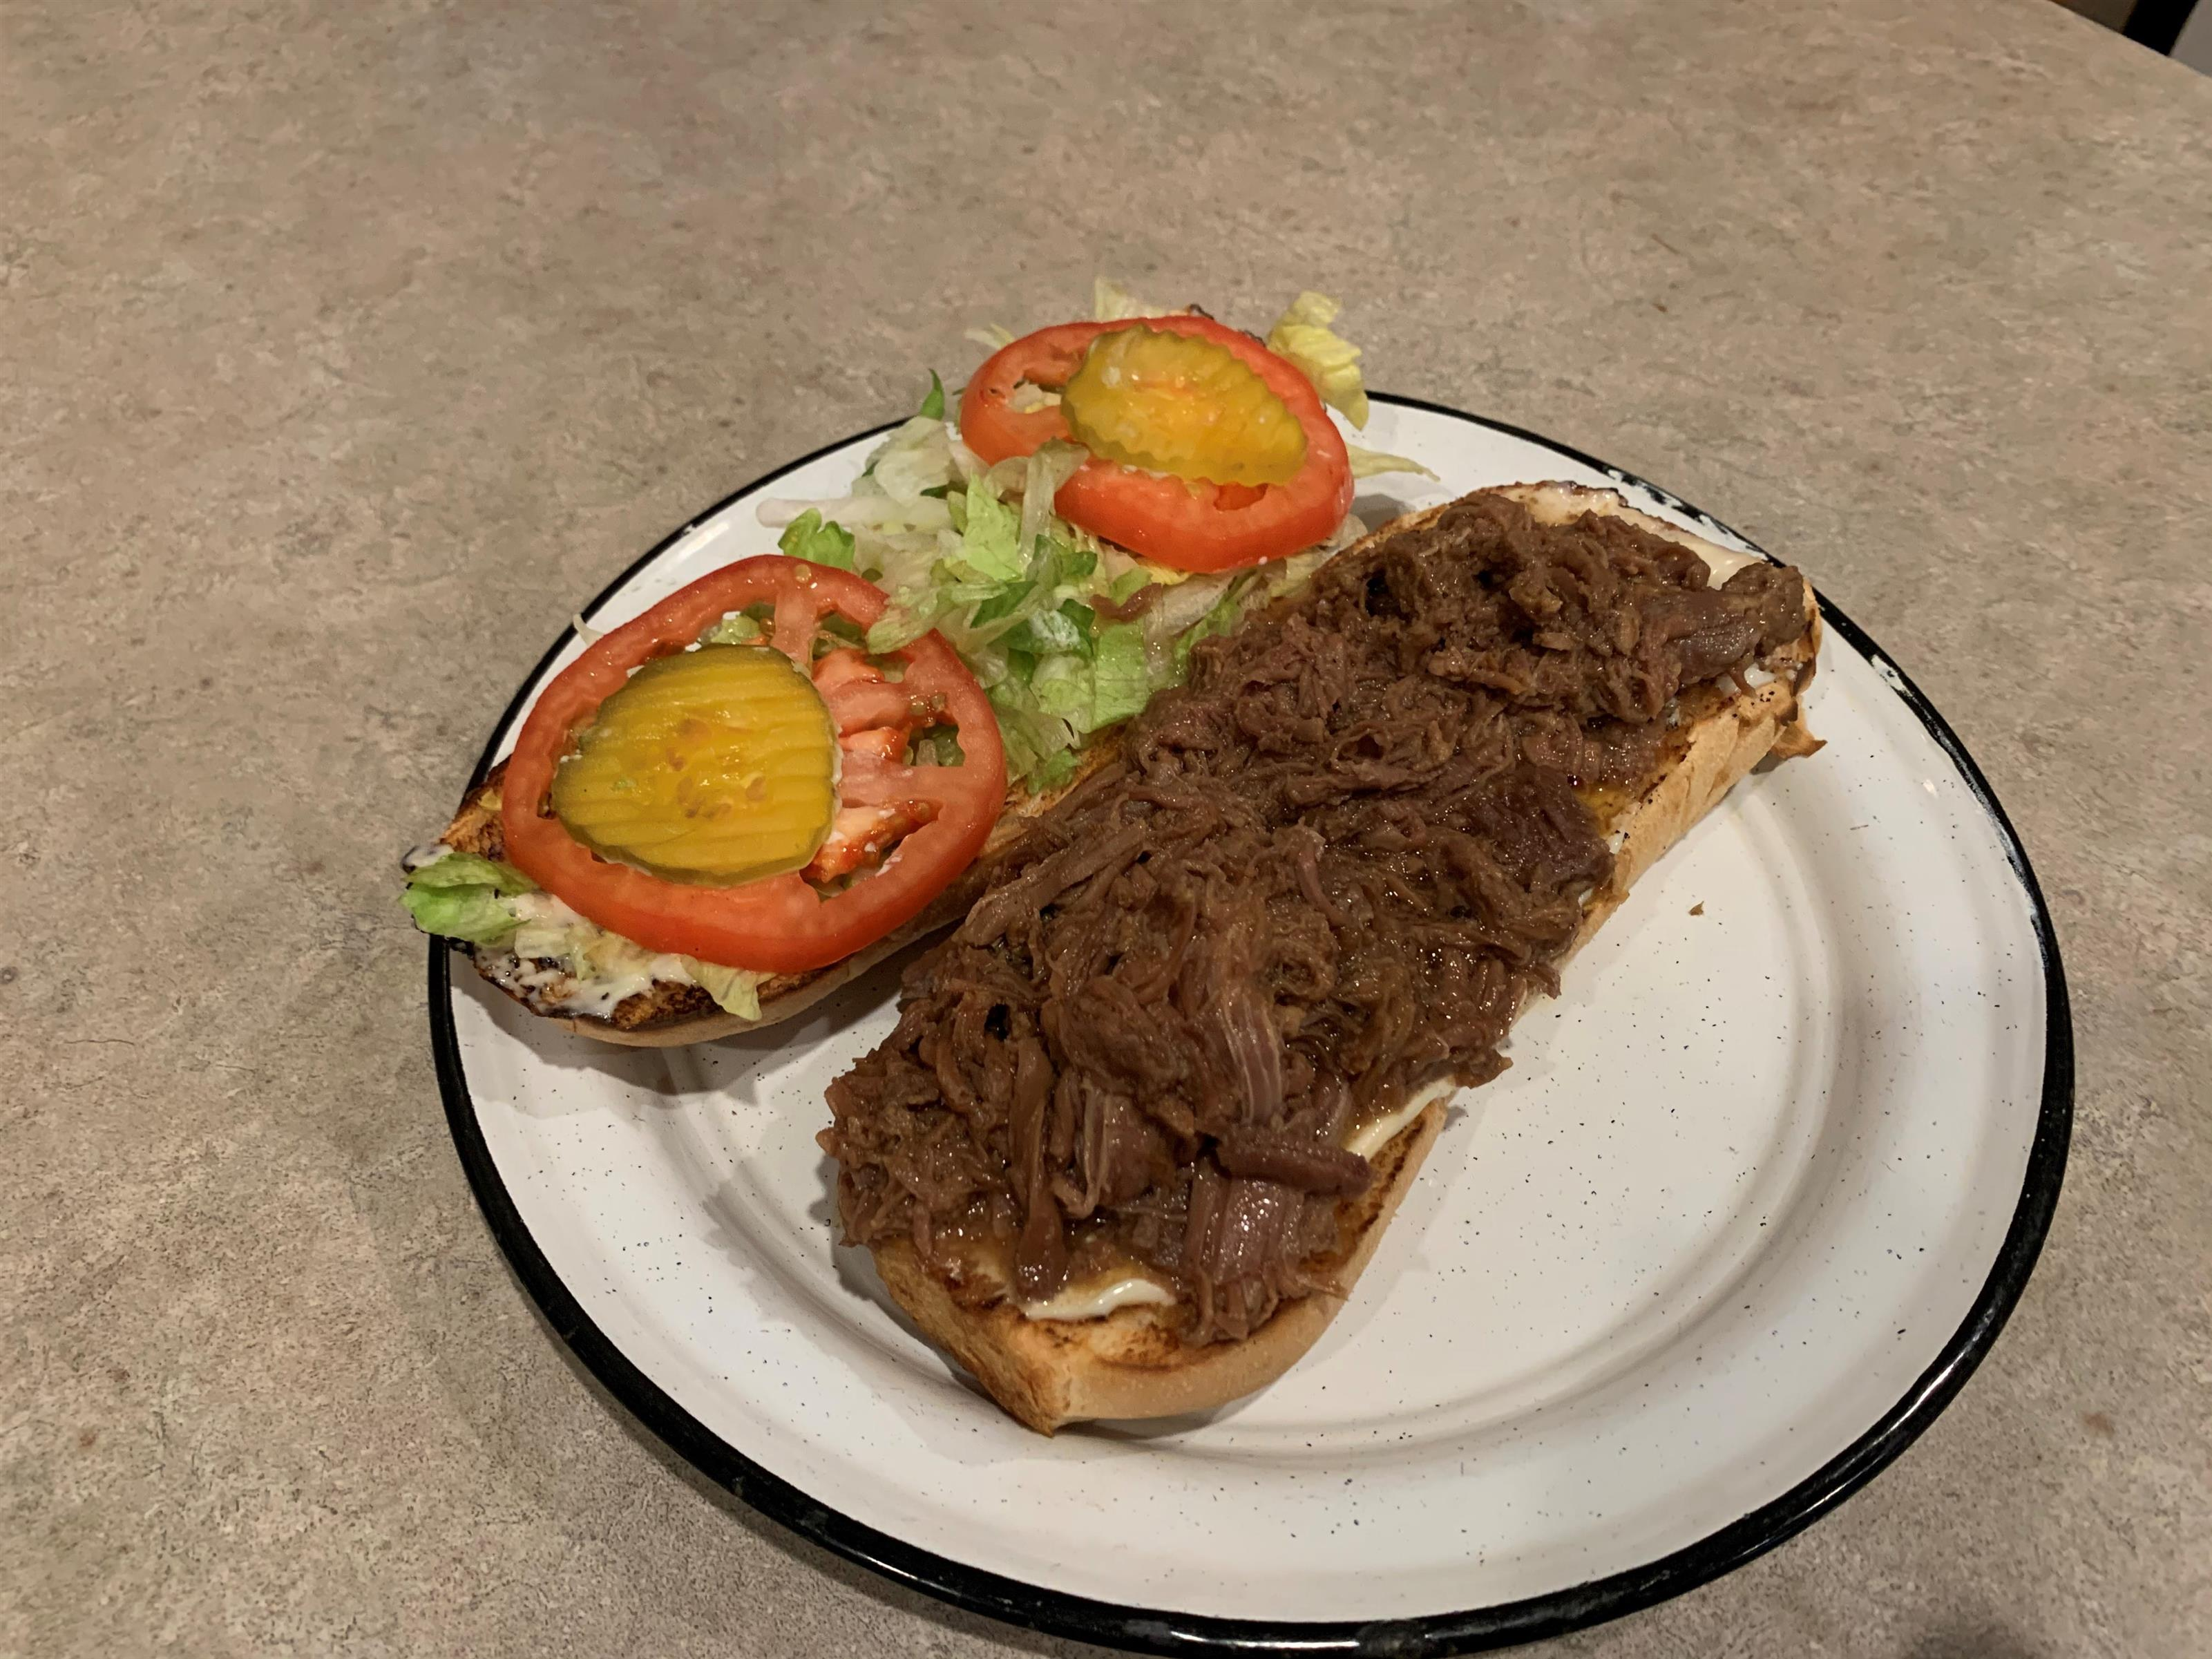 Pulled pork poboy fully dressed with lettuce tomato and mayo